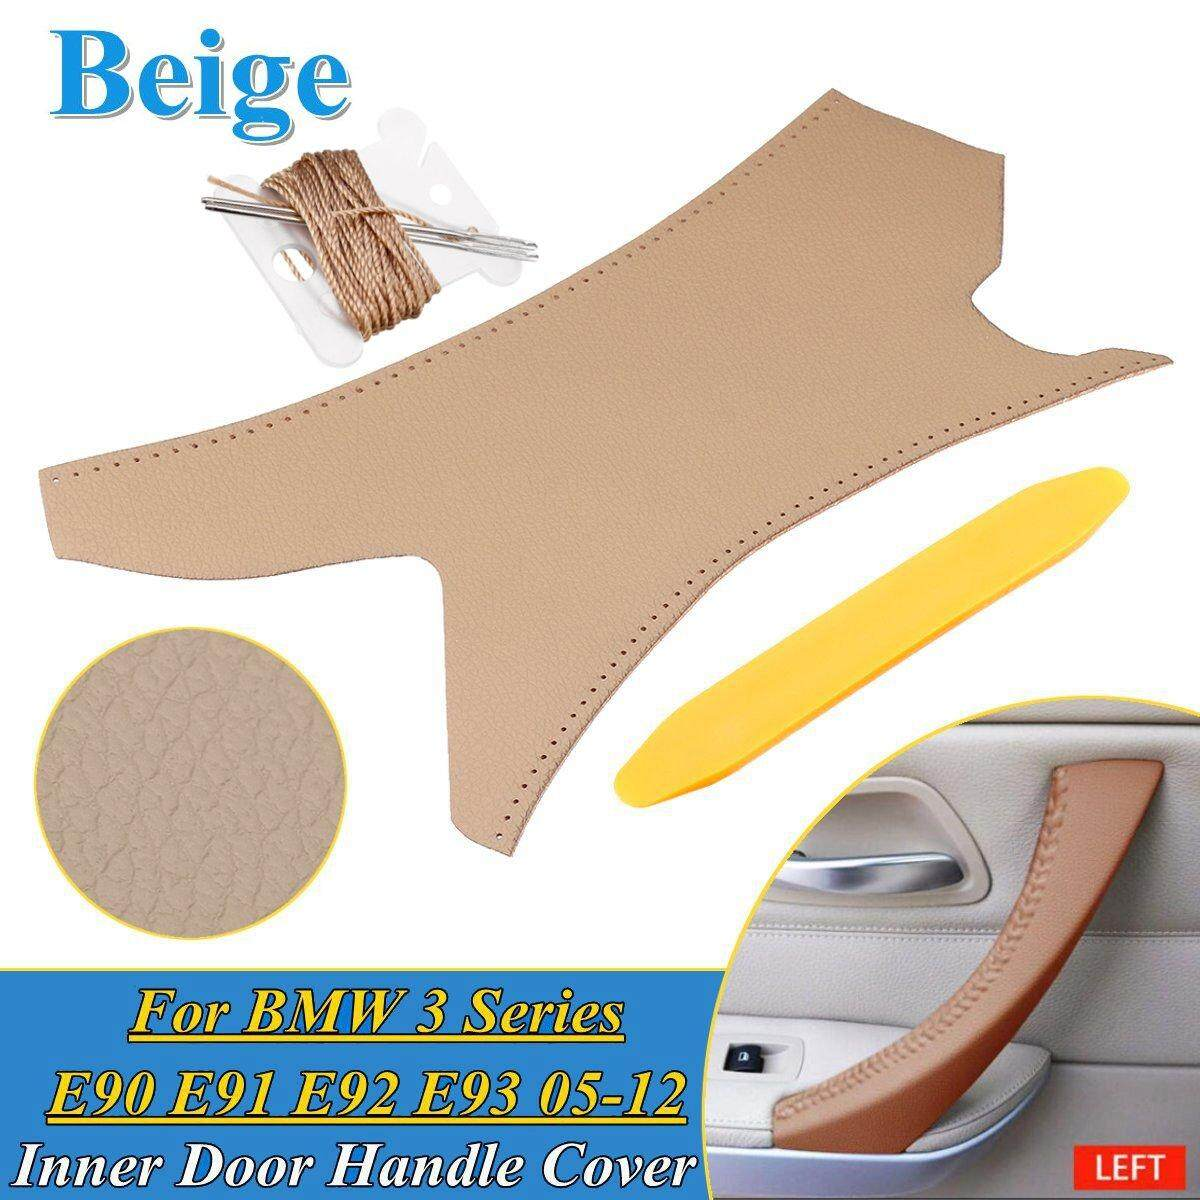 Left Inner Door Handle Cover Trim Hand Sewing For Bmw 3 Series E90 E91 E92 E93 【beige】 By Audew.